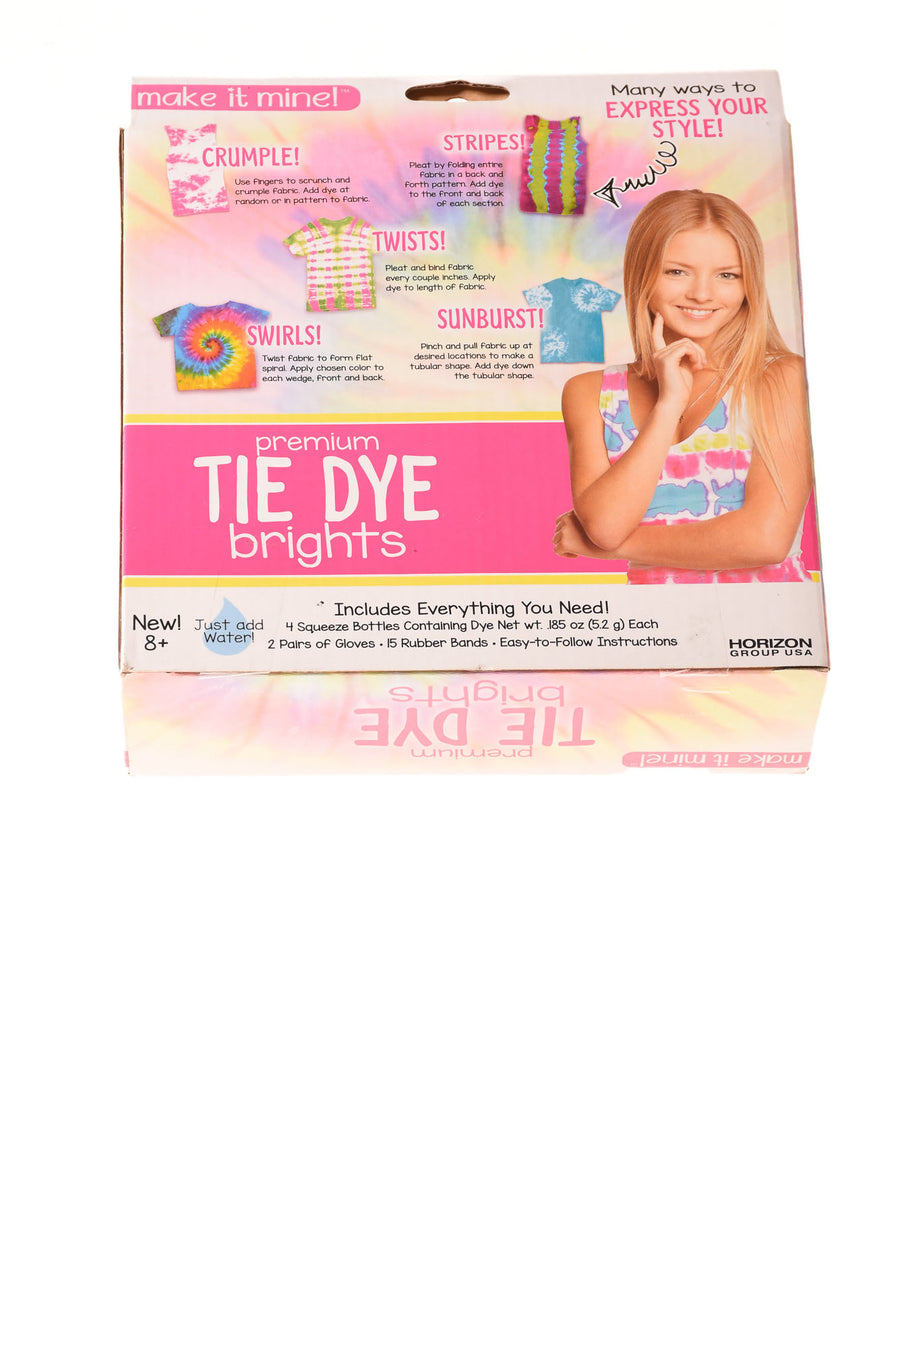 NEW Horizon Group Tie Dye Kit N/A N/A